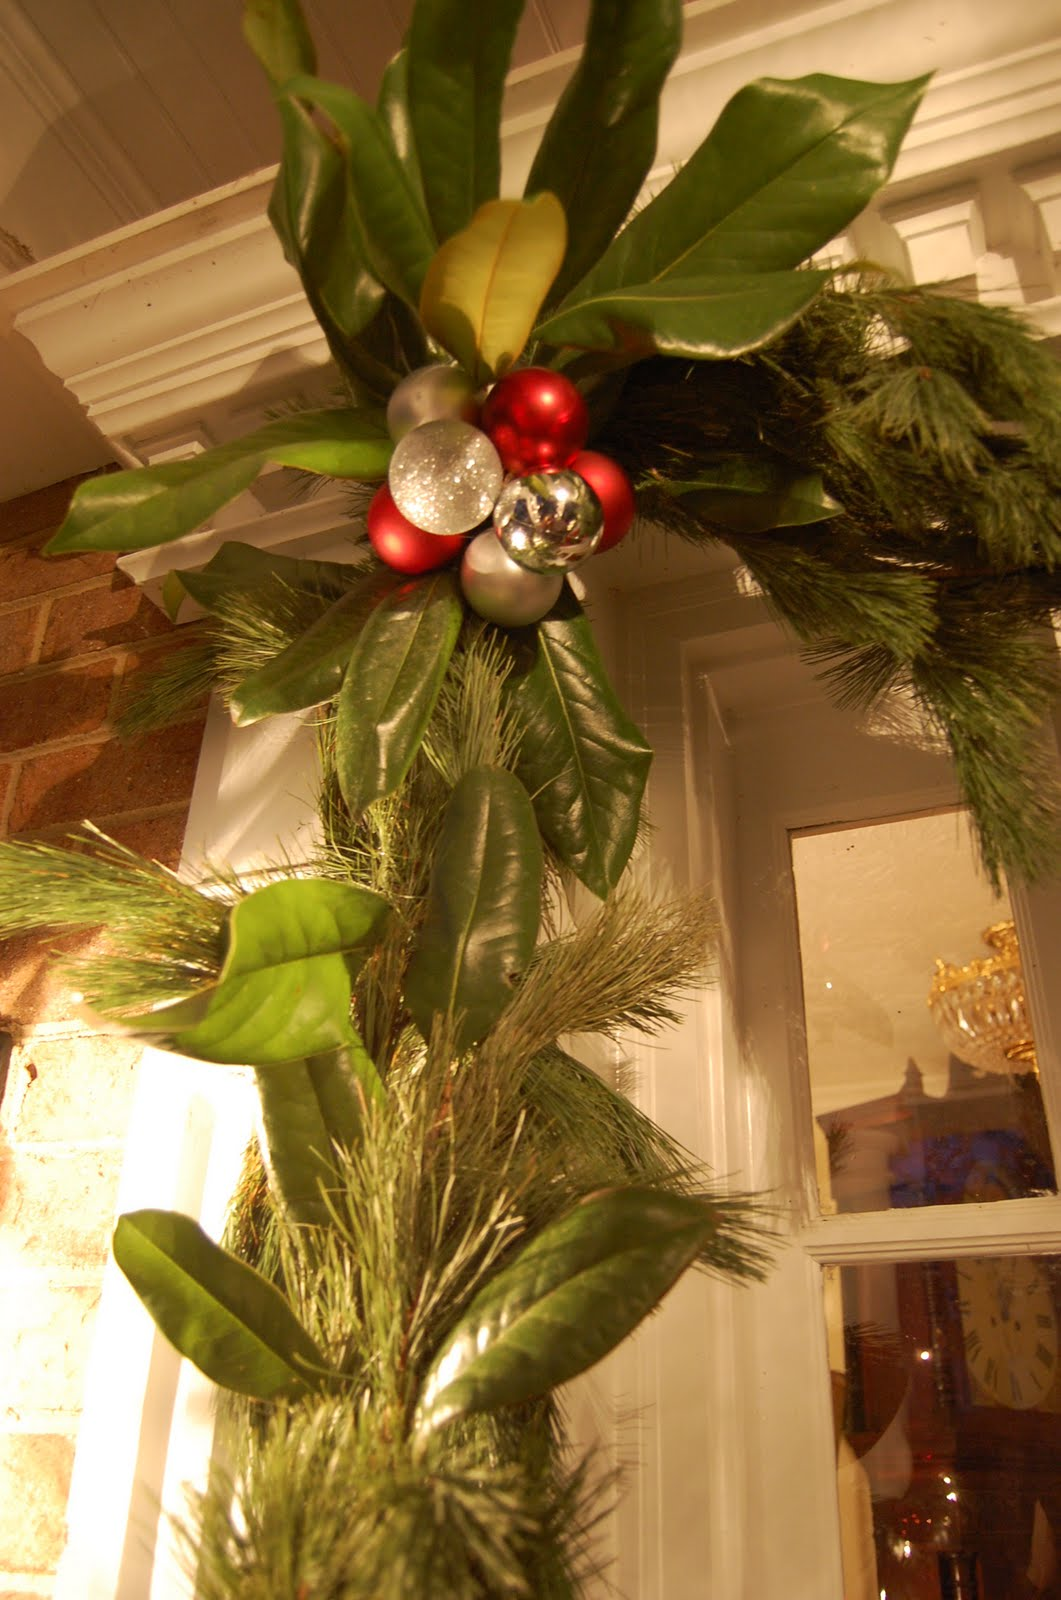 Decorating For Christmas With Magnolia And Pine